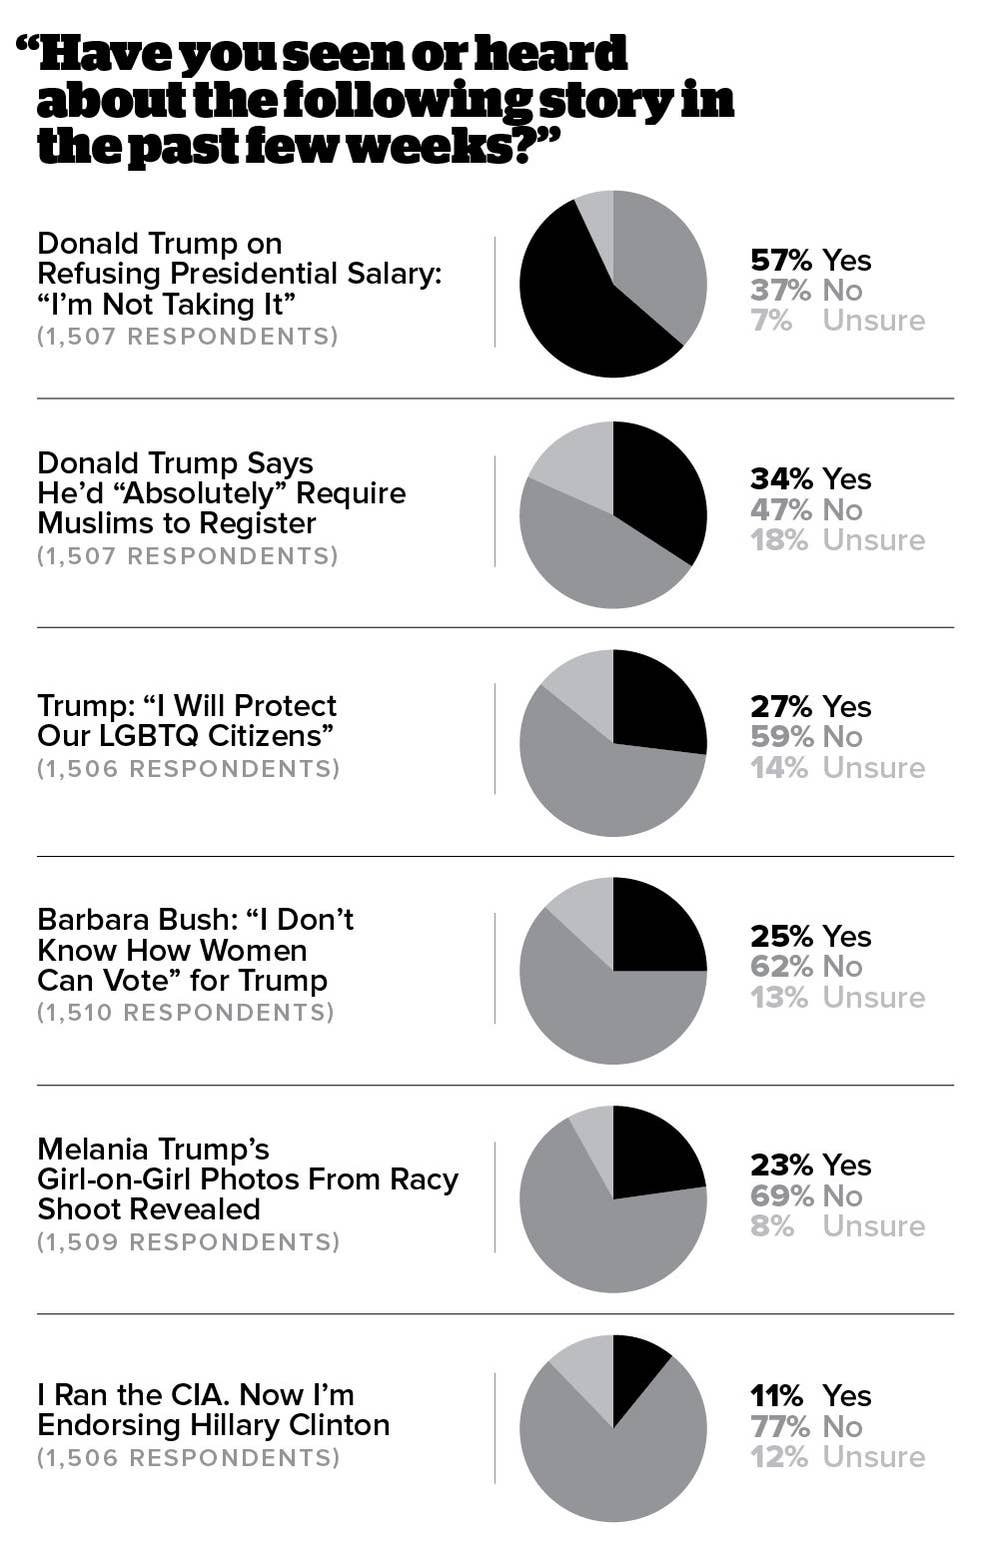 Most Americans Who See Fake News Believe It, New Survey Says